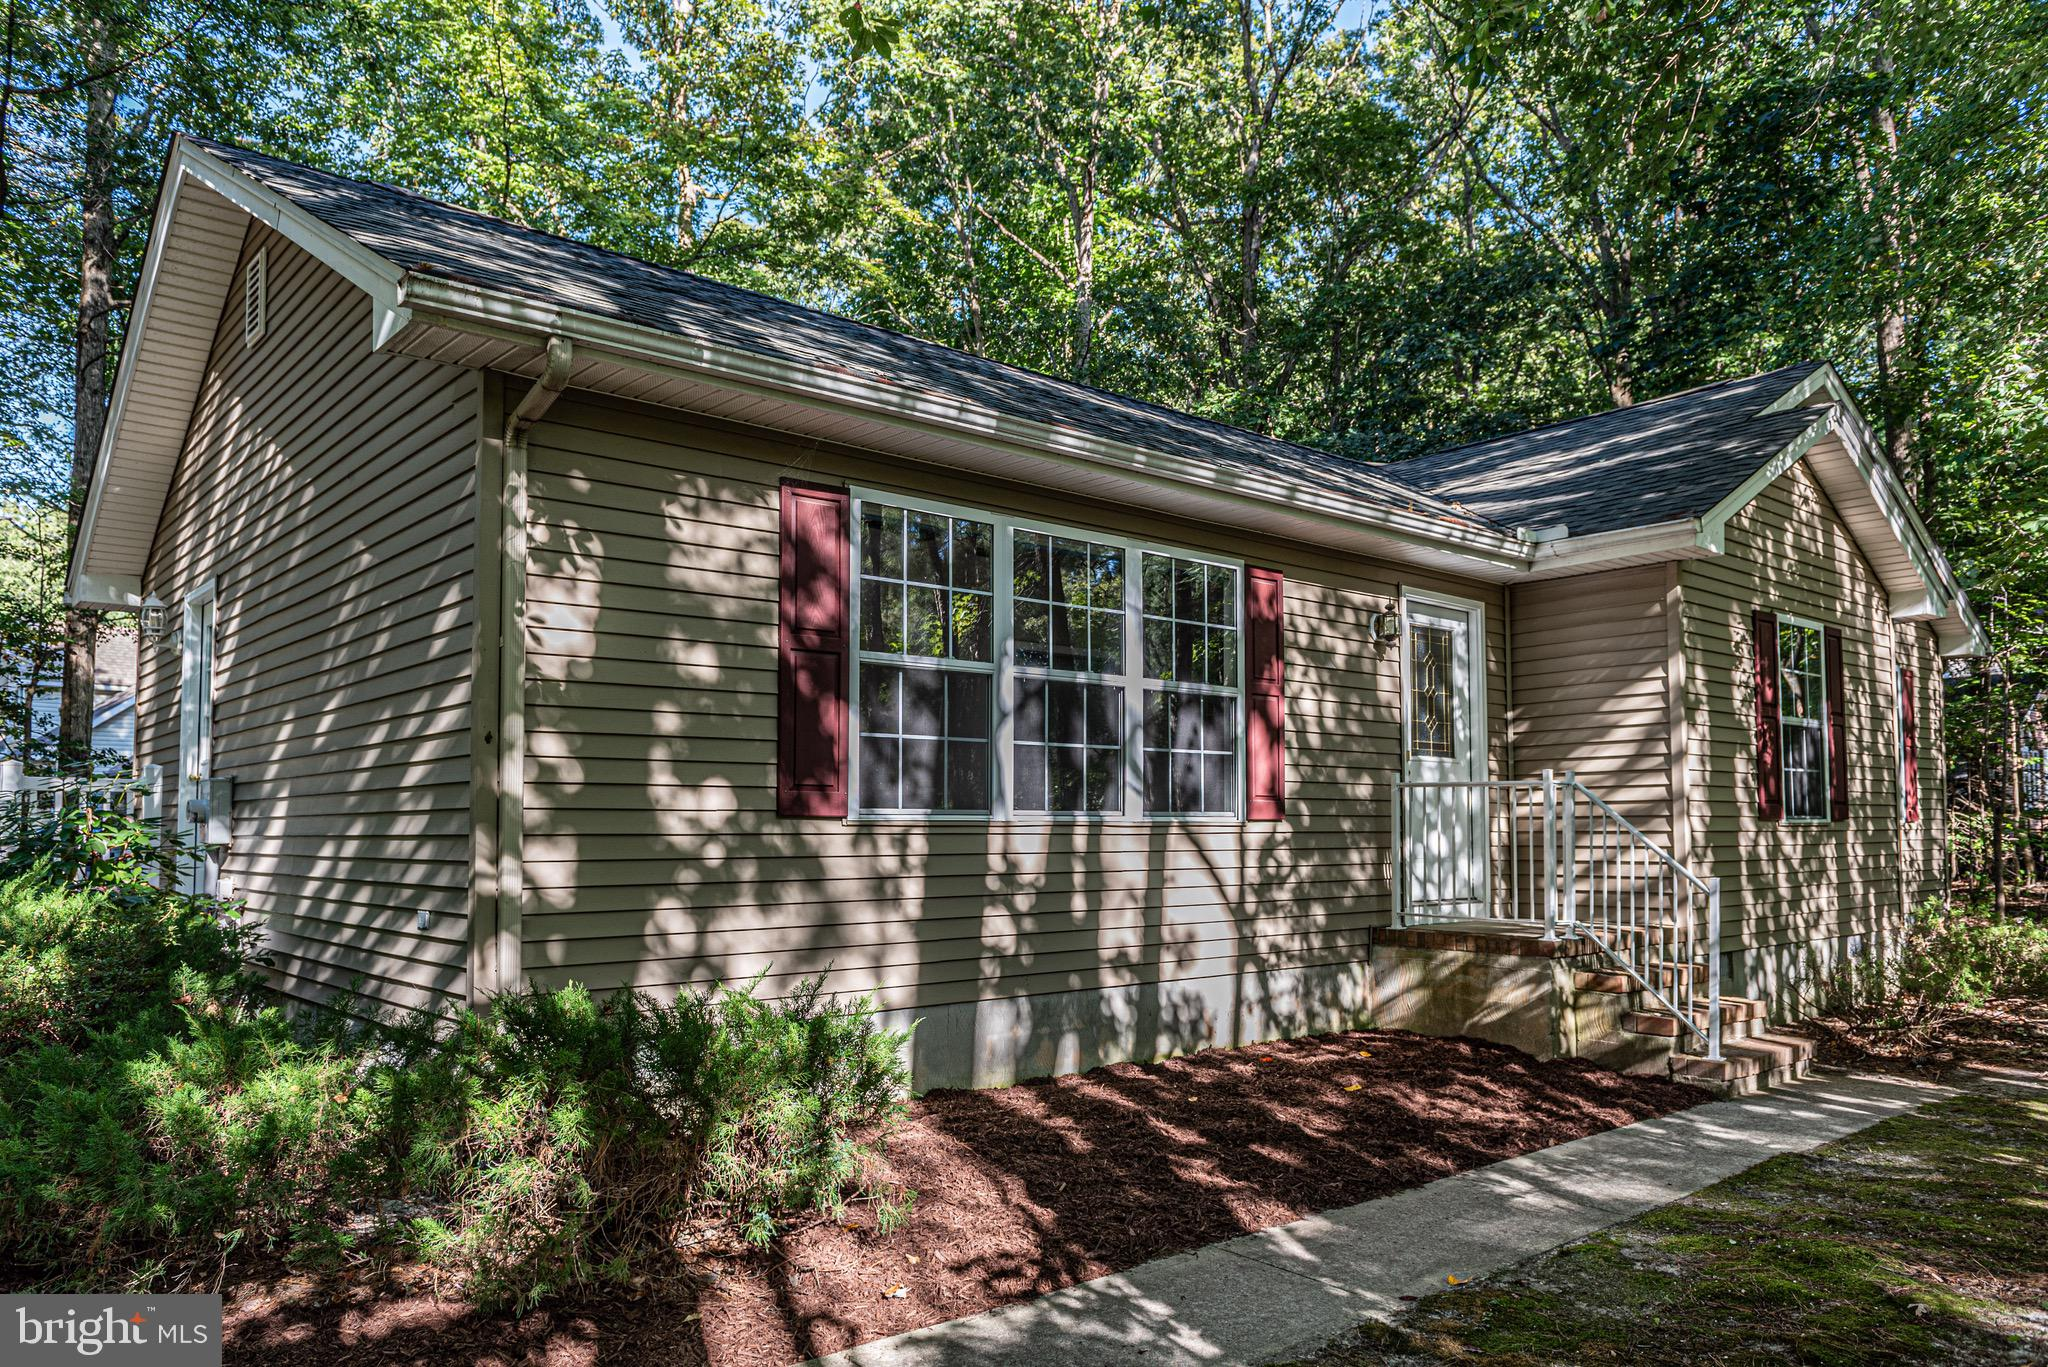 TAKE A LOOK AT THIS GREAT HOME!    JUST THE RIGHT SPACE FOR DOWNSIZING OR A GREAT STARTER HOME!  BRAND NEW ROOF OCT 2019.    One level living plus a  super location  in Ocean Pines for this  Charming Rancher...  its bright & airy & mostly updated!  Easy access out to South Gate of OP  with  3 BR/2 BA, screened Porch/new screening  & attached Storage.   Many new items throughout the home...Coastal style 100% waterproof  CORETEC flooring, New appliances/Kitchen Cabinets freshly painted with new hardware, new ceiling fans, fresh paint throughout the home, and a NEW Roof too!  Separate  Laundry rm &  Concrete Driveway with drive entry on Cannon.  Use either  Front or Side entry.   Floored Attic space too.  The corner lot is oversized and a buyer could even build a detached garage- see the plat!  The only thing missing is you!  Enjoy all of the amenities Ocean Pines has to offer... 5 pools, parks, walking/biking paths, Beach Club in Ocean City & parking there, golfing, tennis and so much more all just 6 miles to Ocean City!